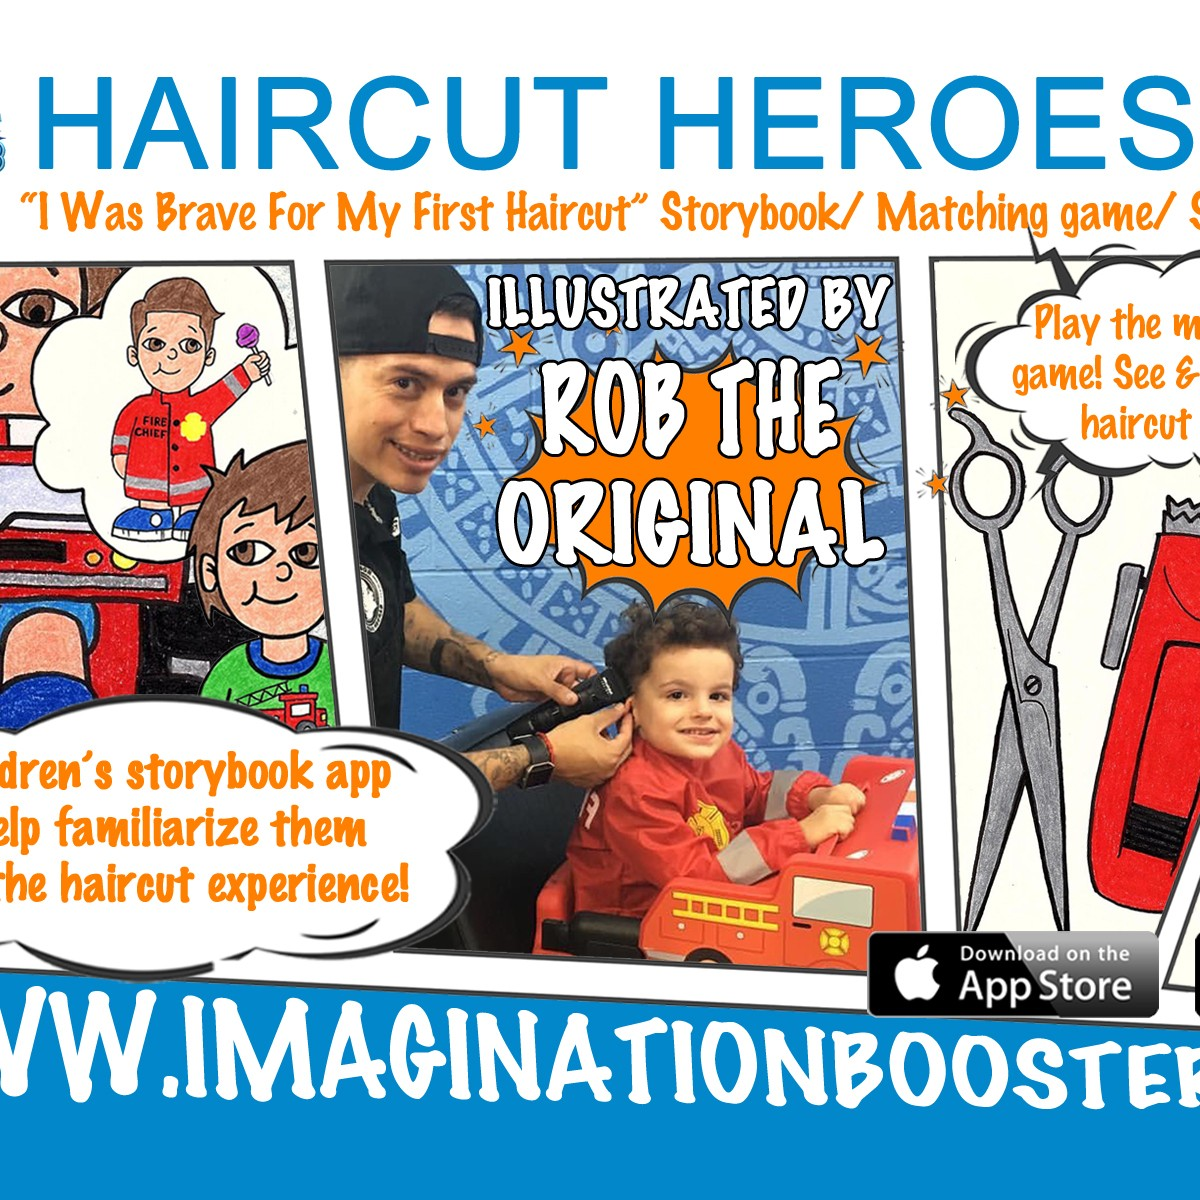 Haircut Heroes Childrens Storybook App